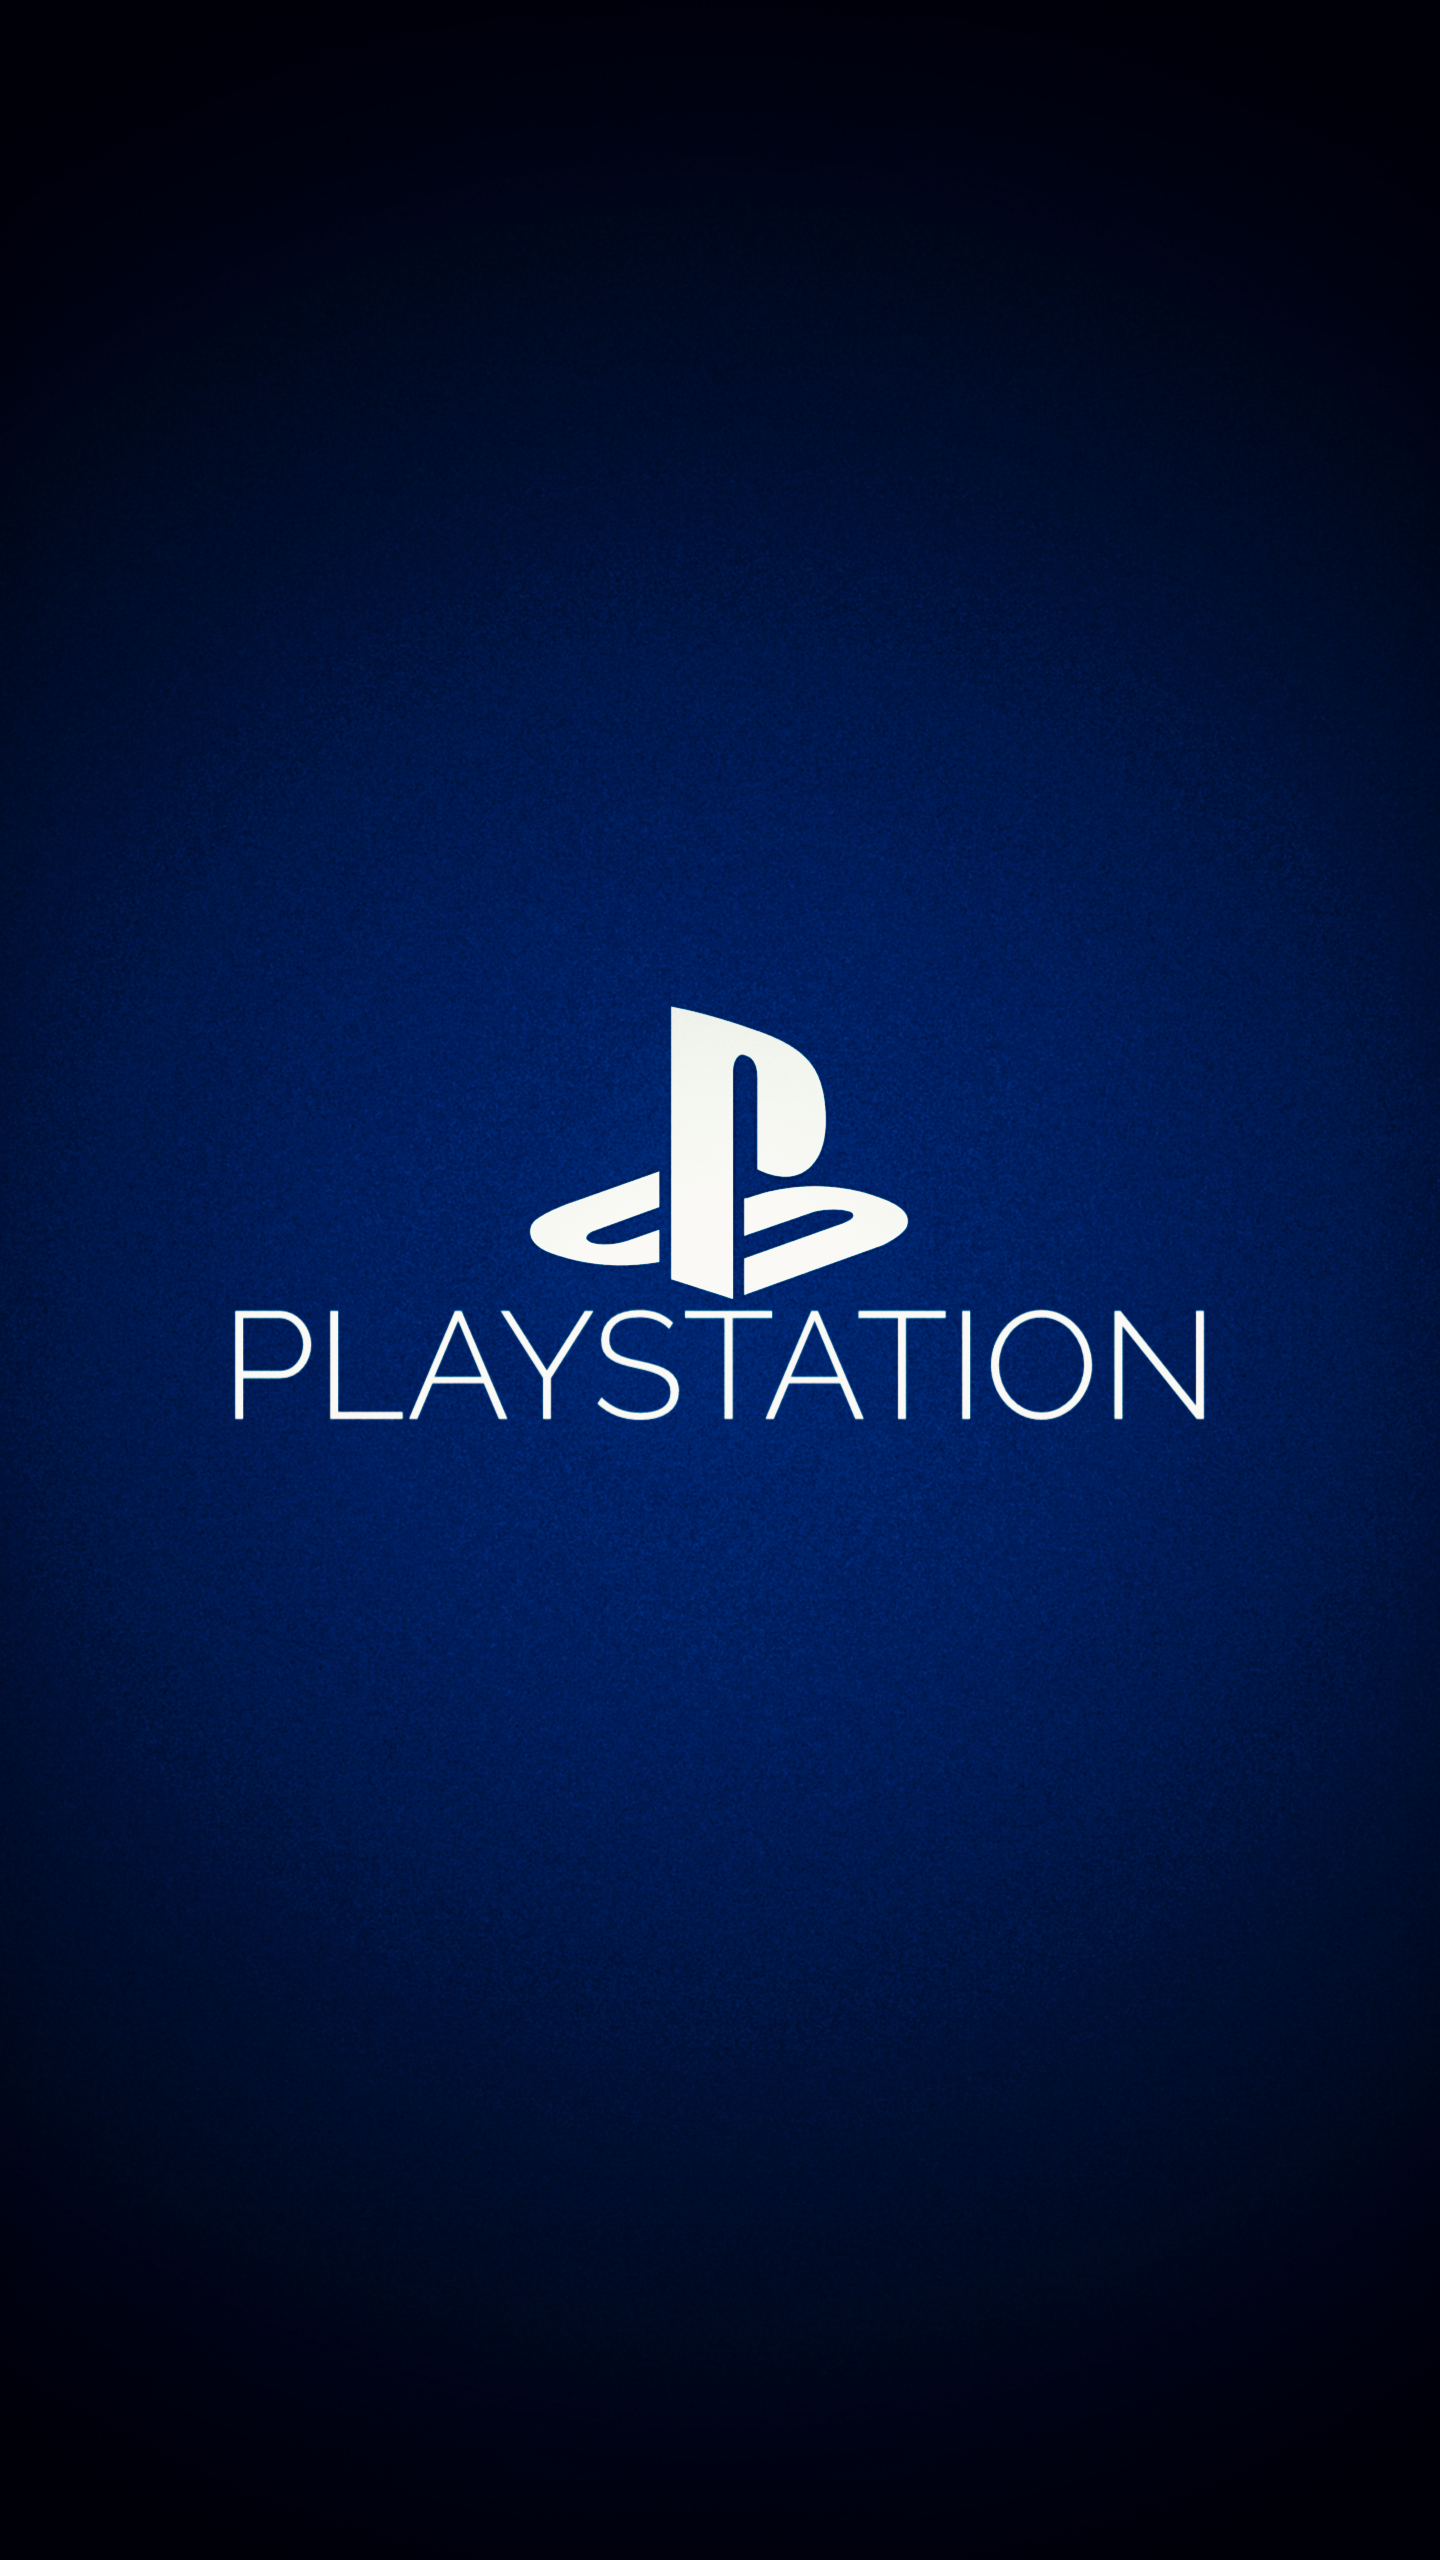 Playstation Phone Wallpapers Top Free Playstation Phone Backgrounds Wallpaperaccess